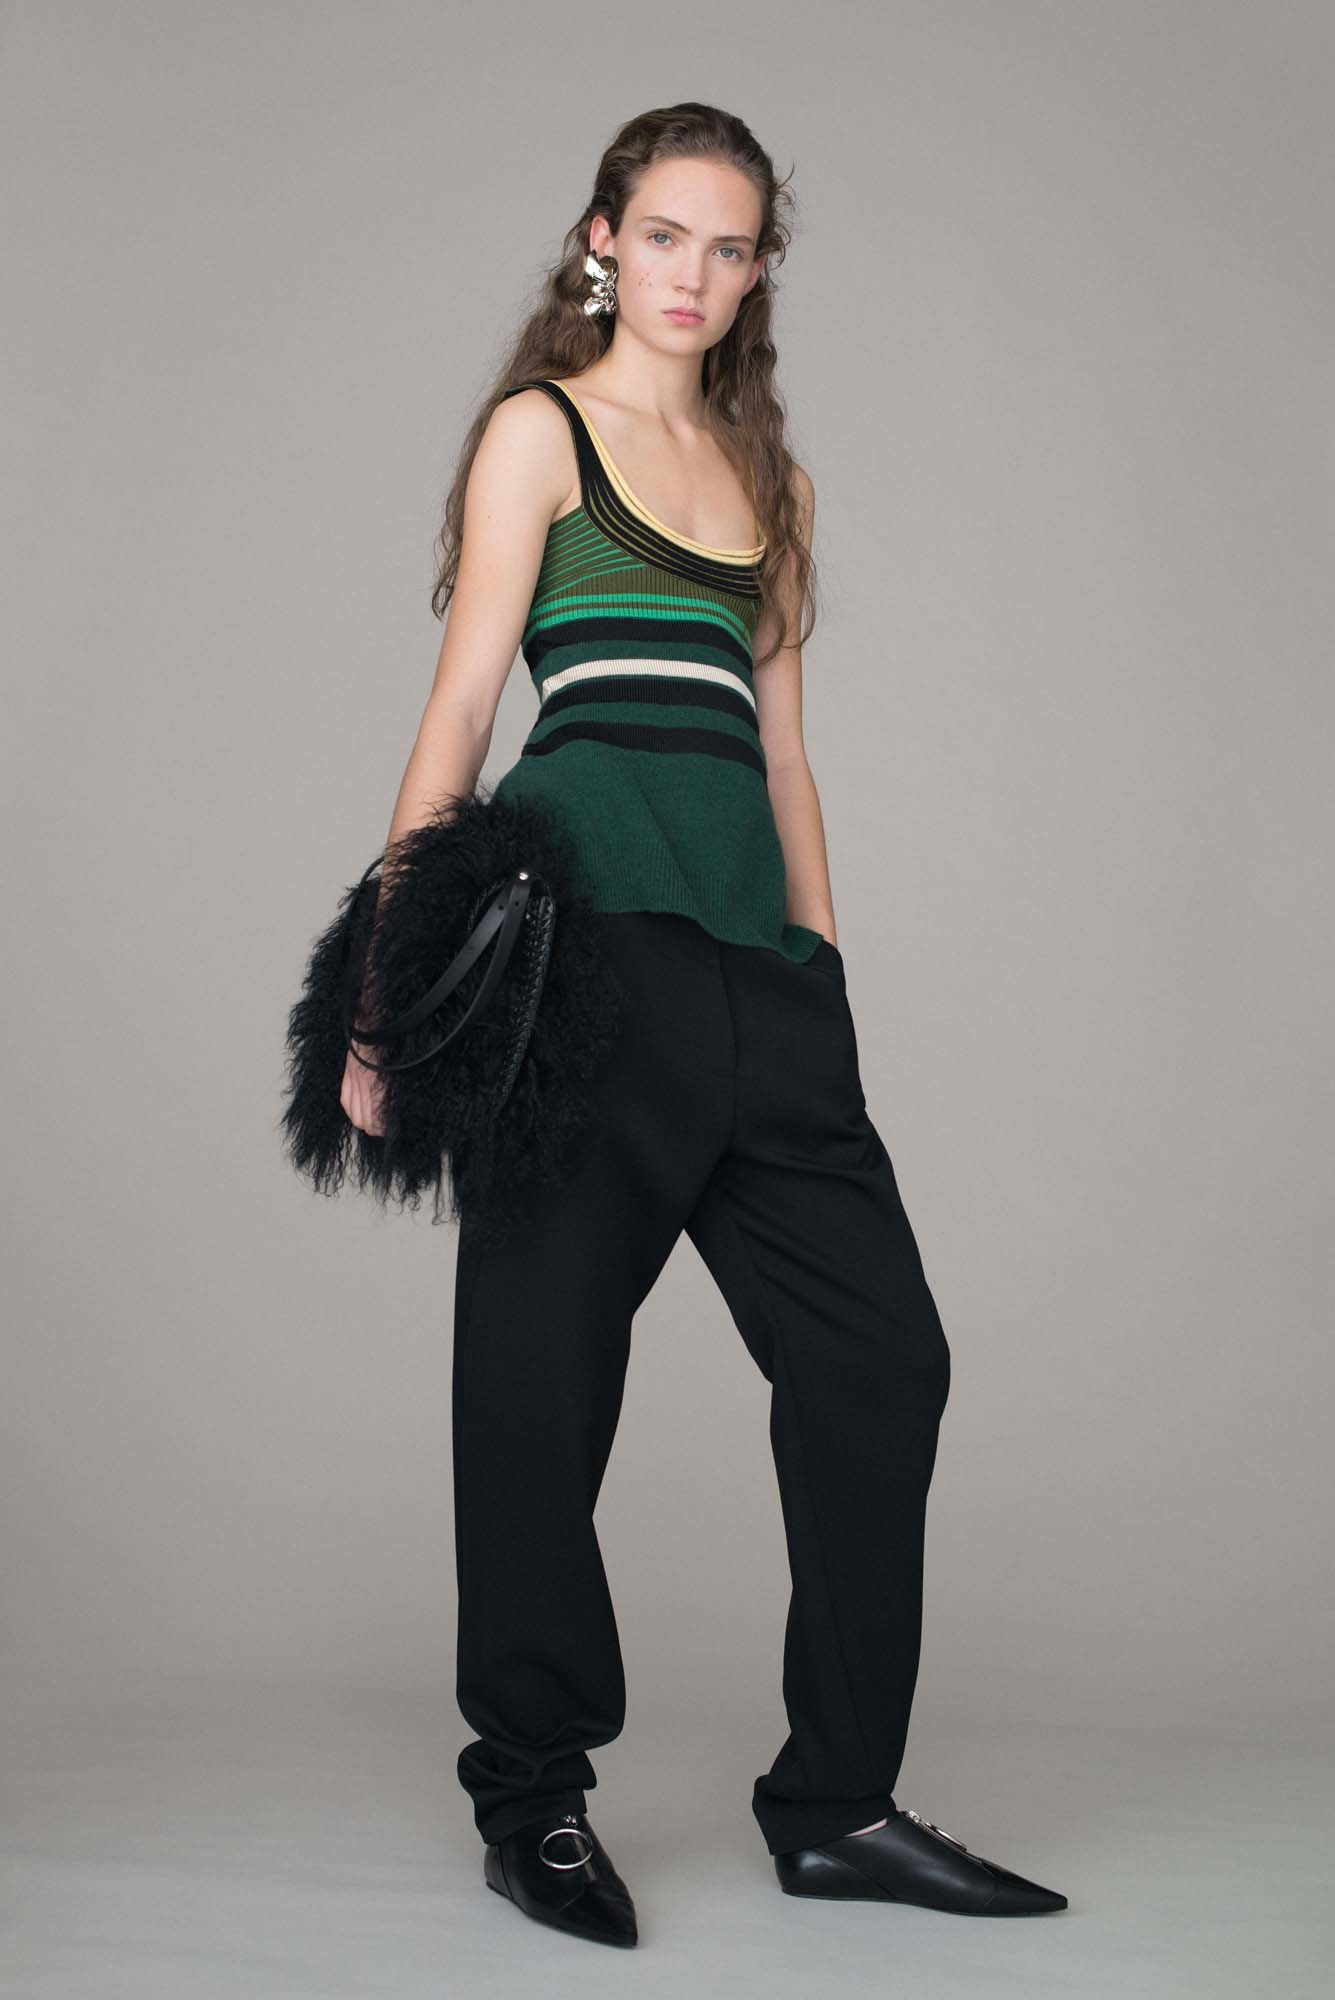 <p>Looking ahead to the fall 2016 pre-collections, there are a handful of key trends you can tap into to update your wardrobe right now. Here are 10 ideas to kick start a stylish New Year. (Compiled by Naomi Smith.)</p><p>1. Flat, pointed shoes.</p>